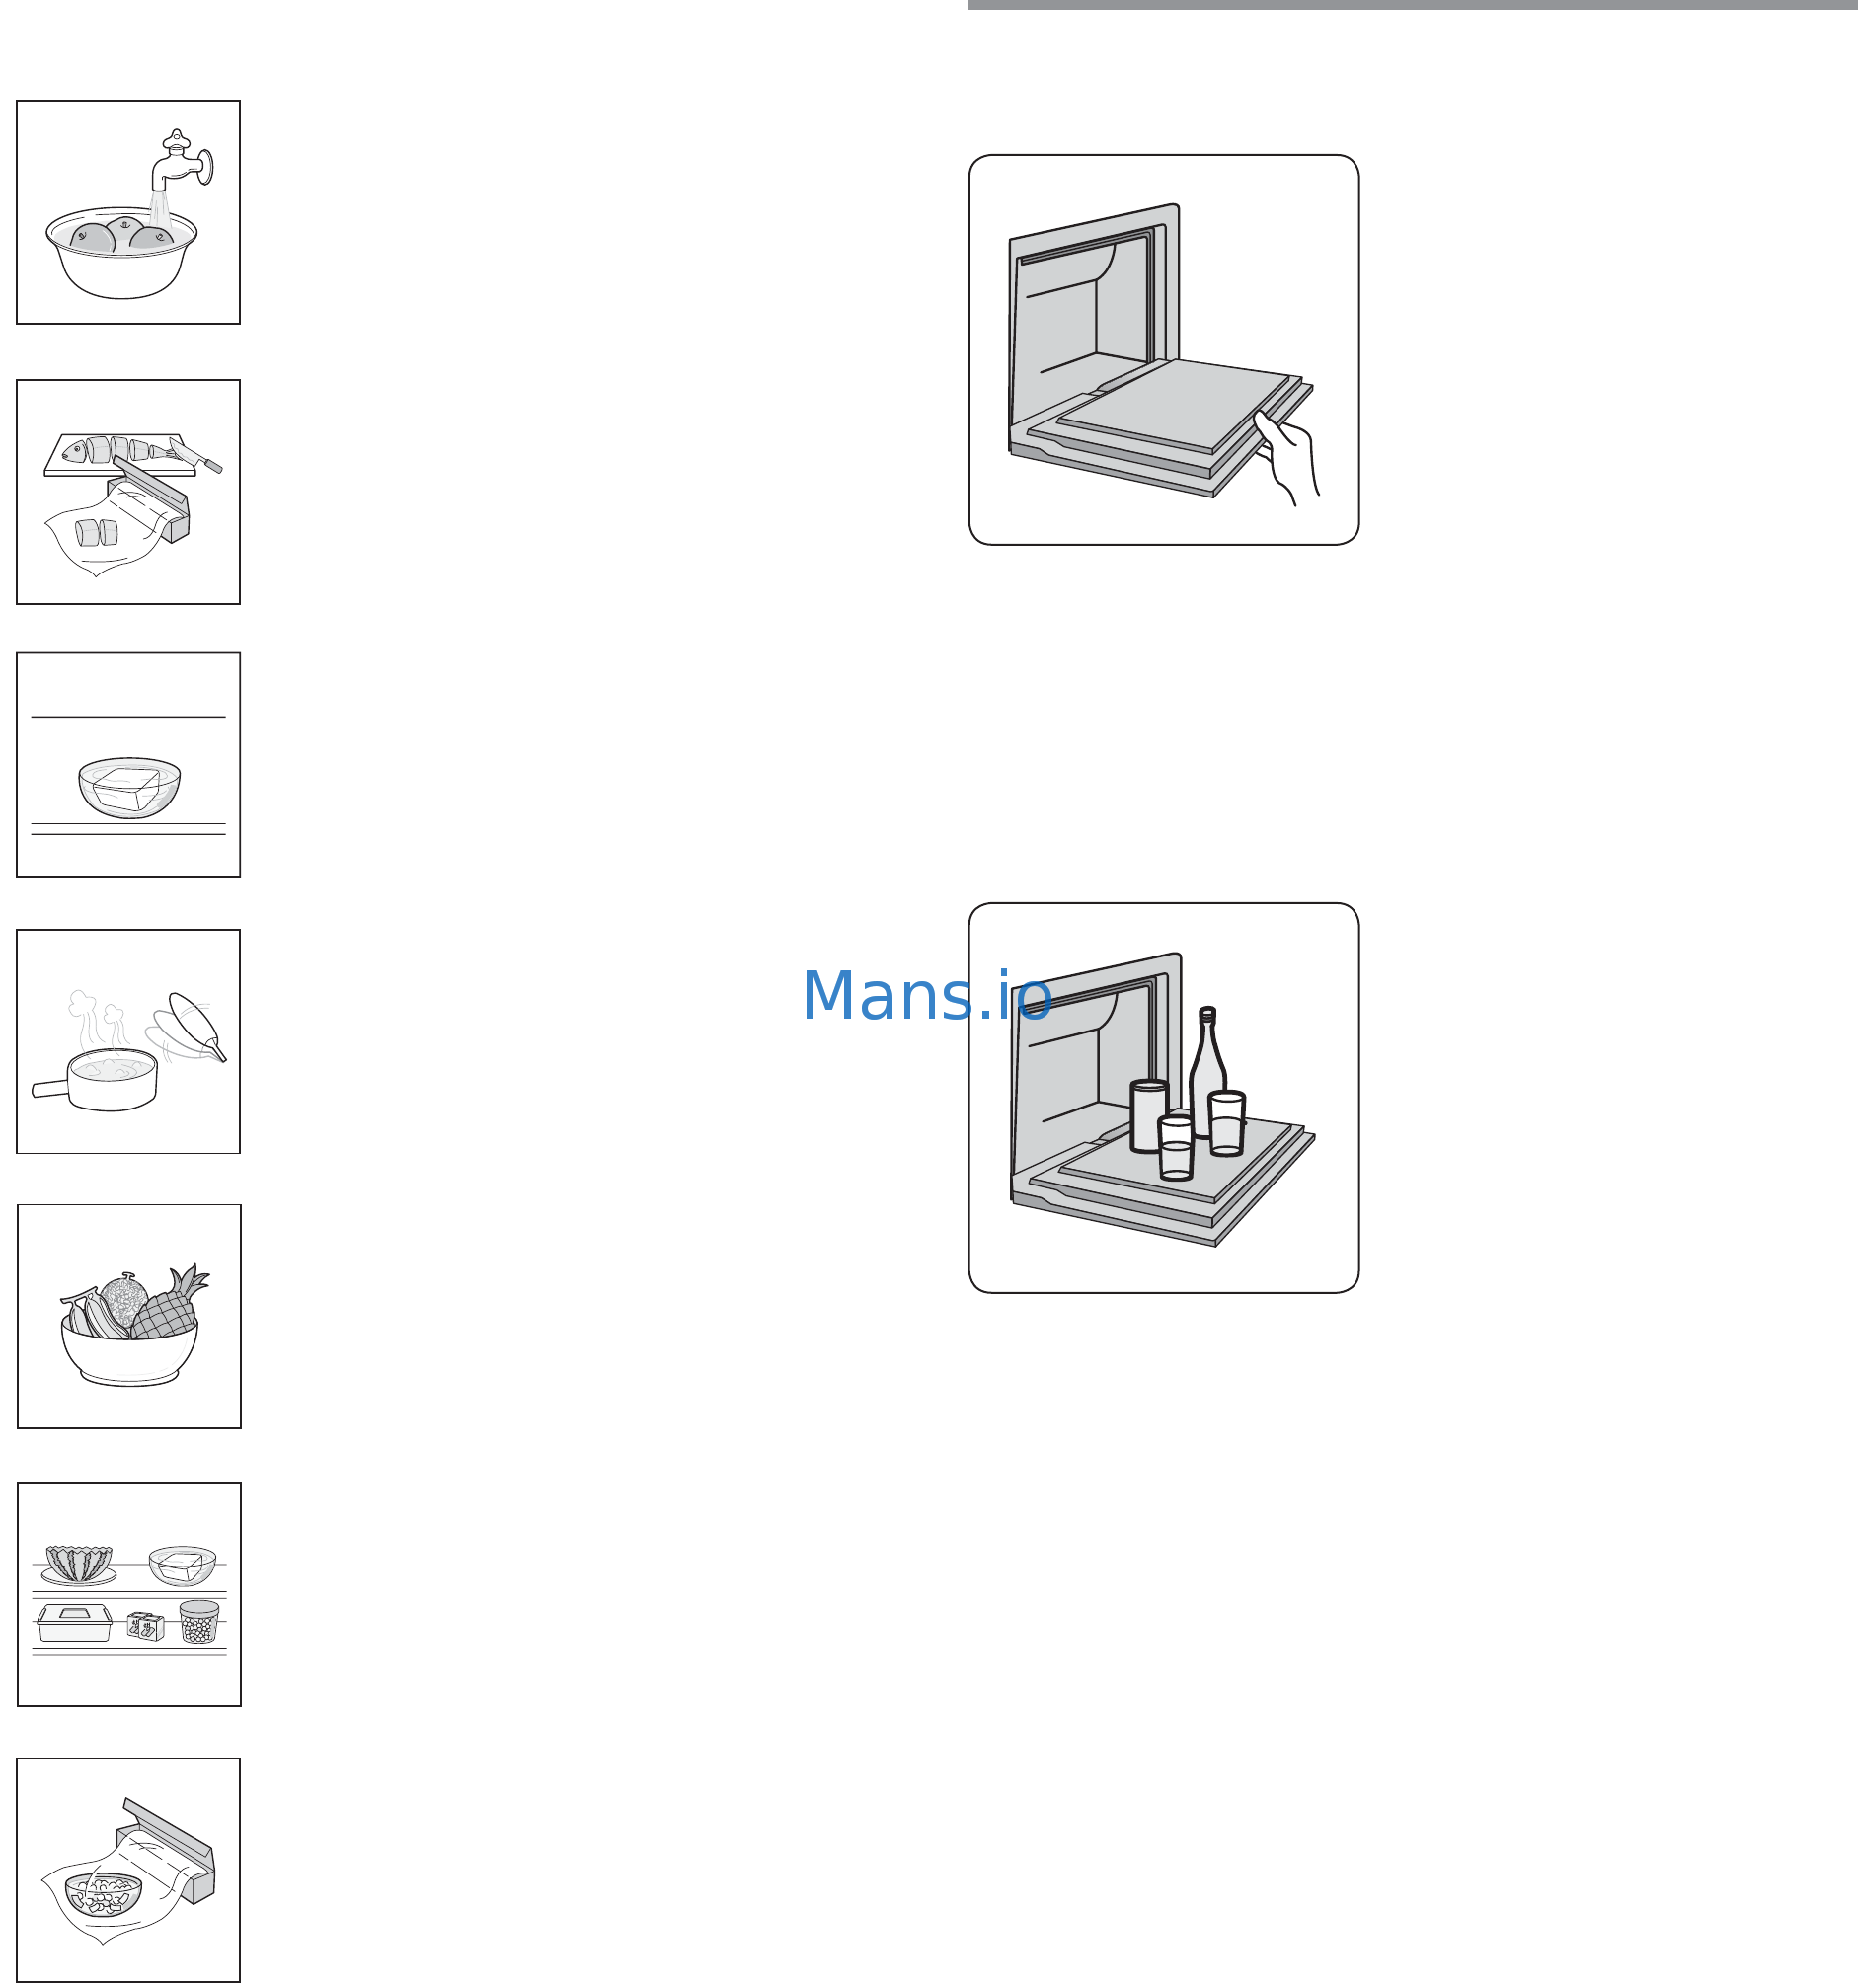 Daewoo Electronics FRAX22D3S Instruction Manual Page: 8